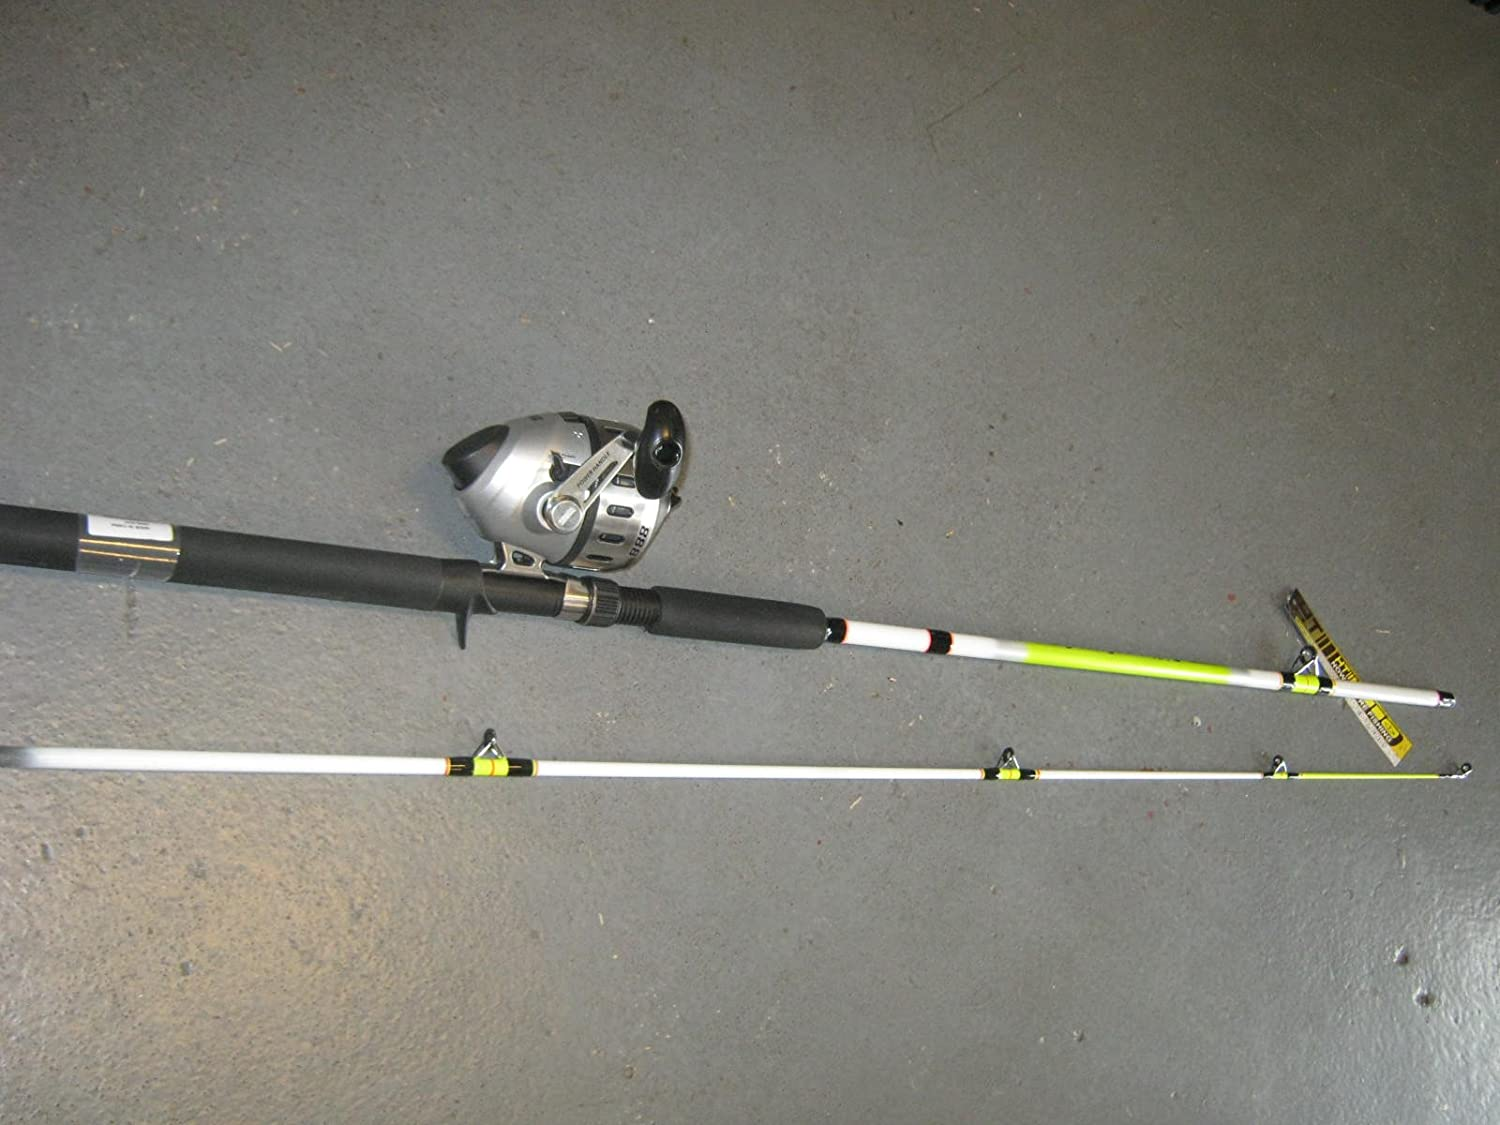 Garrett Outdoors 888ナマズコンボ7 ft ft Outdoors B07BRXZNCZ, Global Life Japan:78365250 --- ferraridentalclinic.com.lb